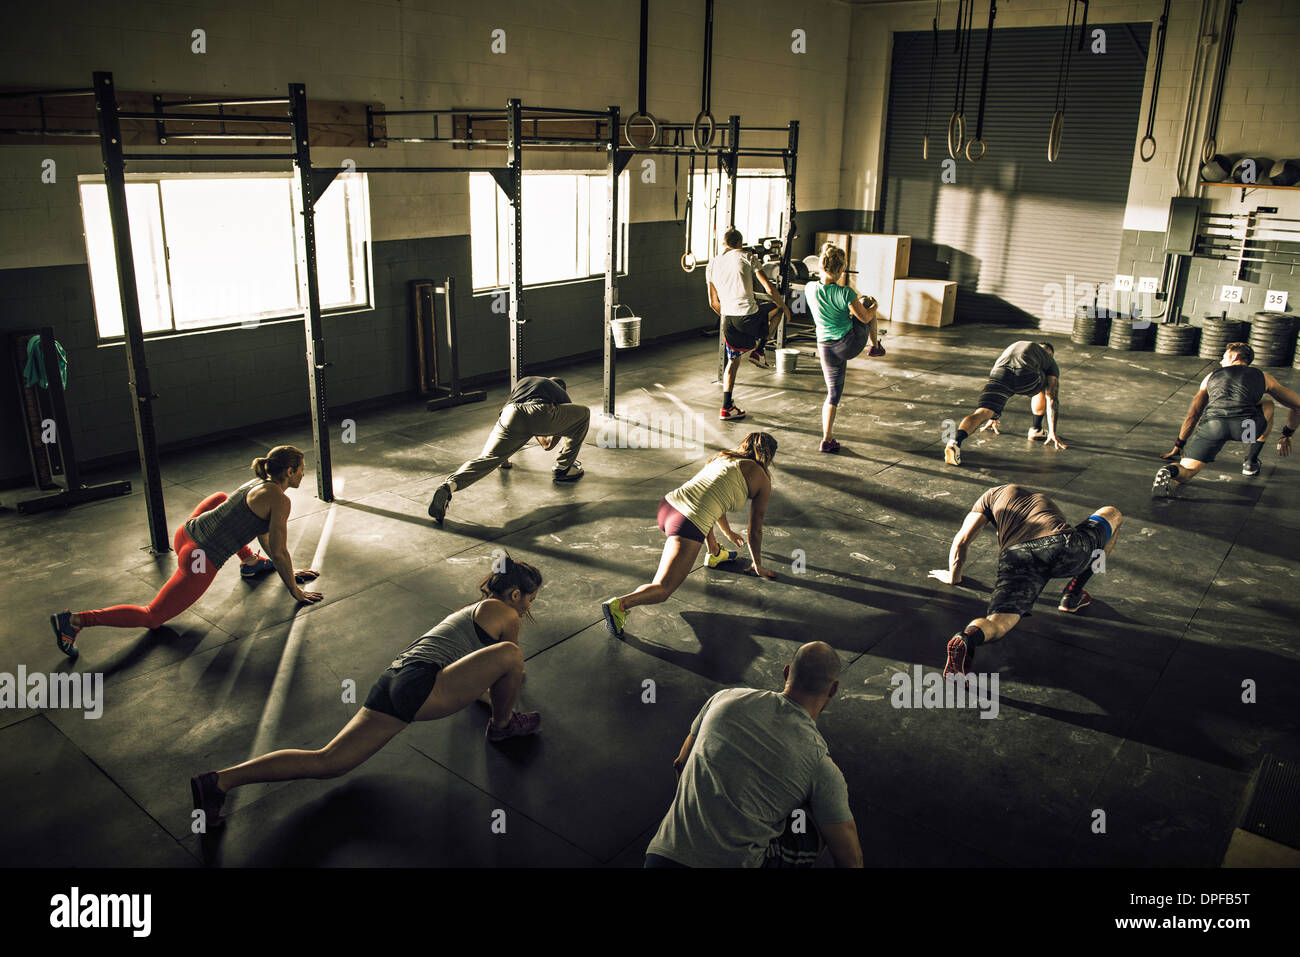 Fitness class training and stretching together in gym - Stock Image